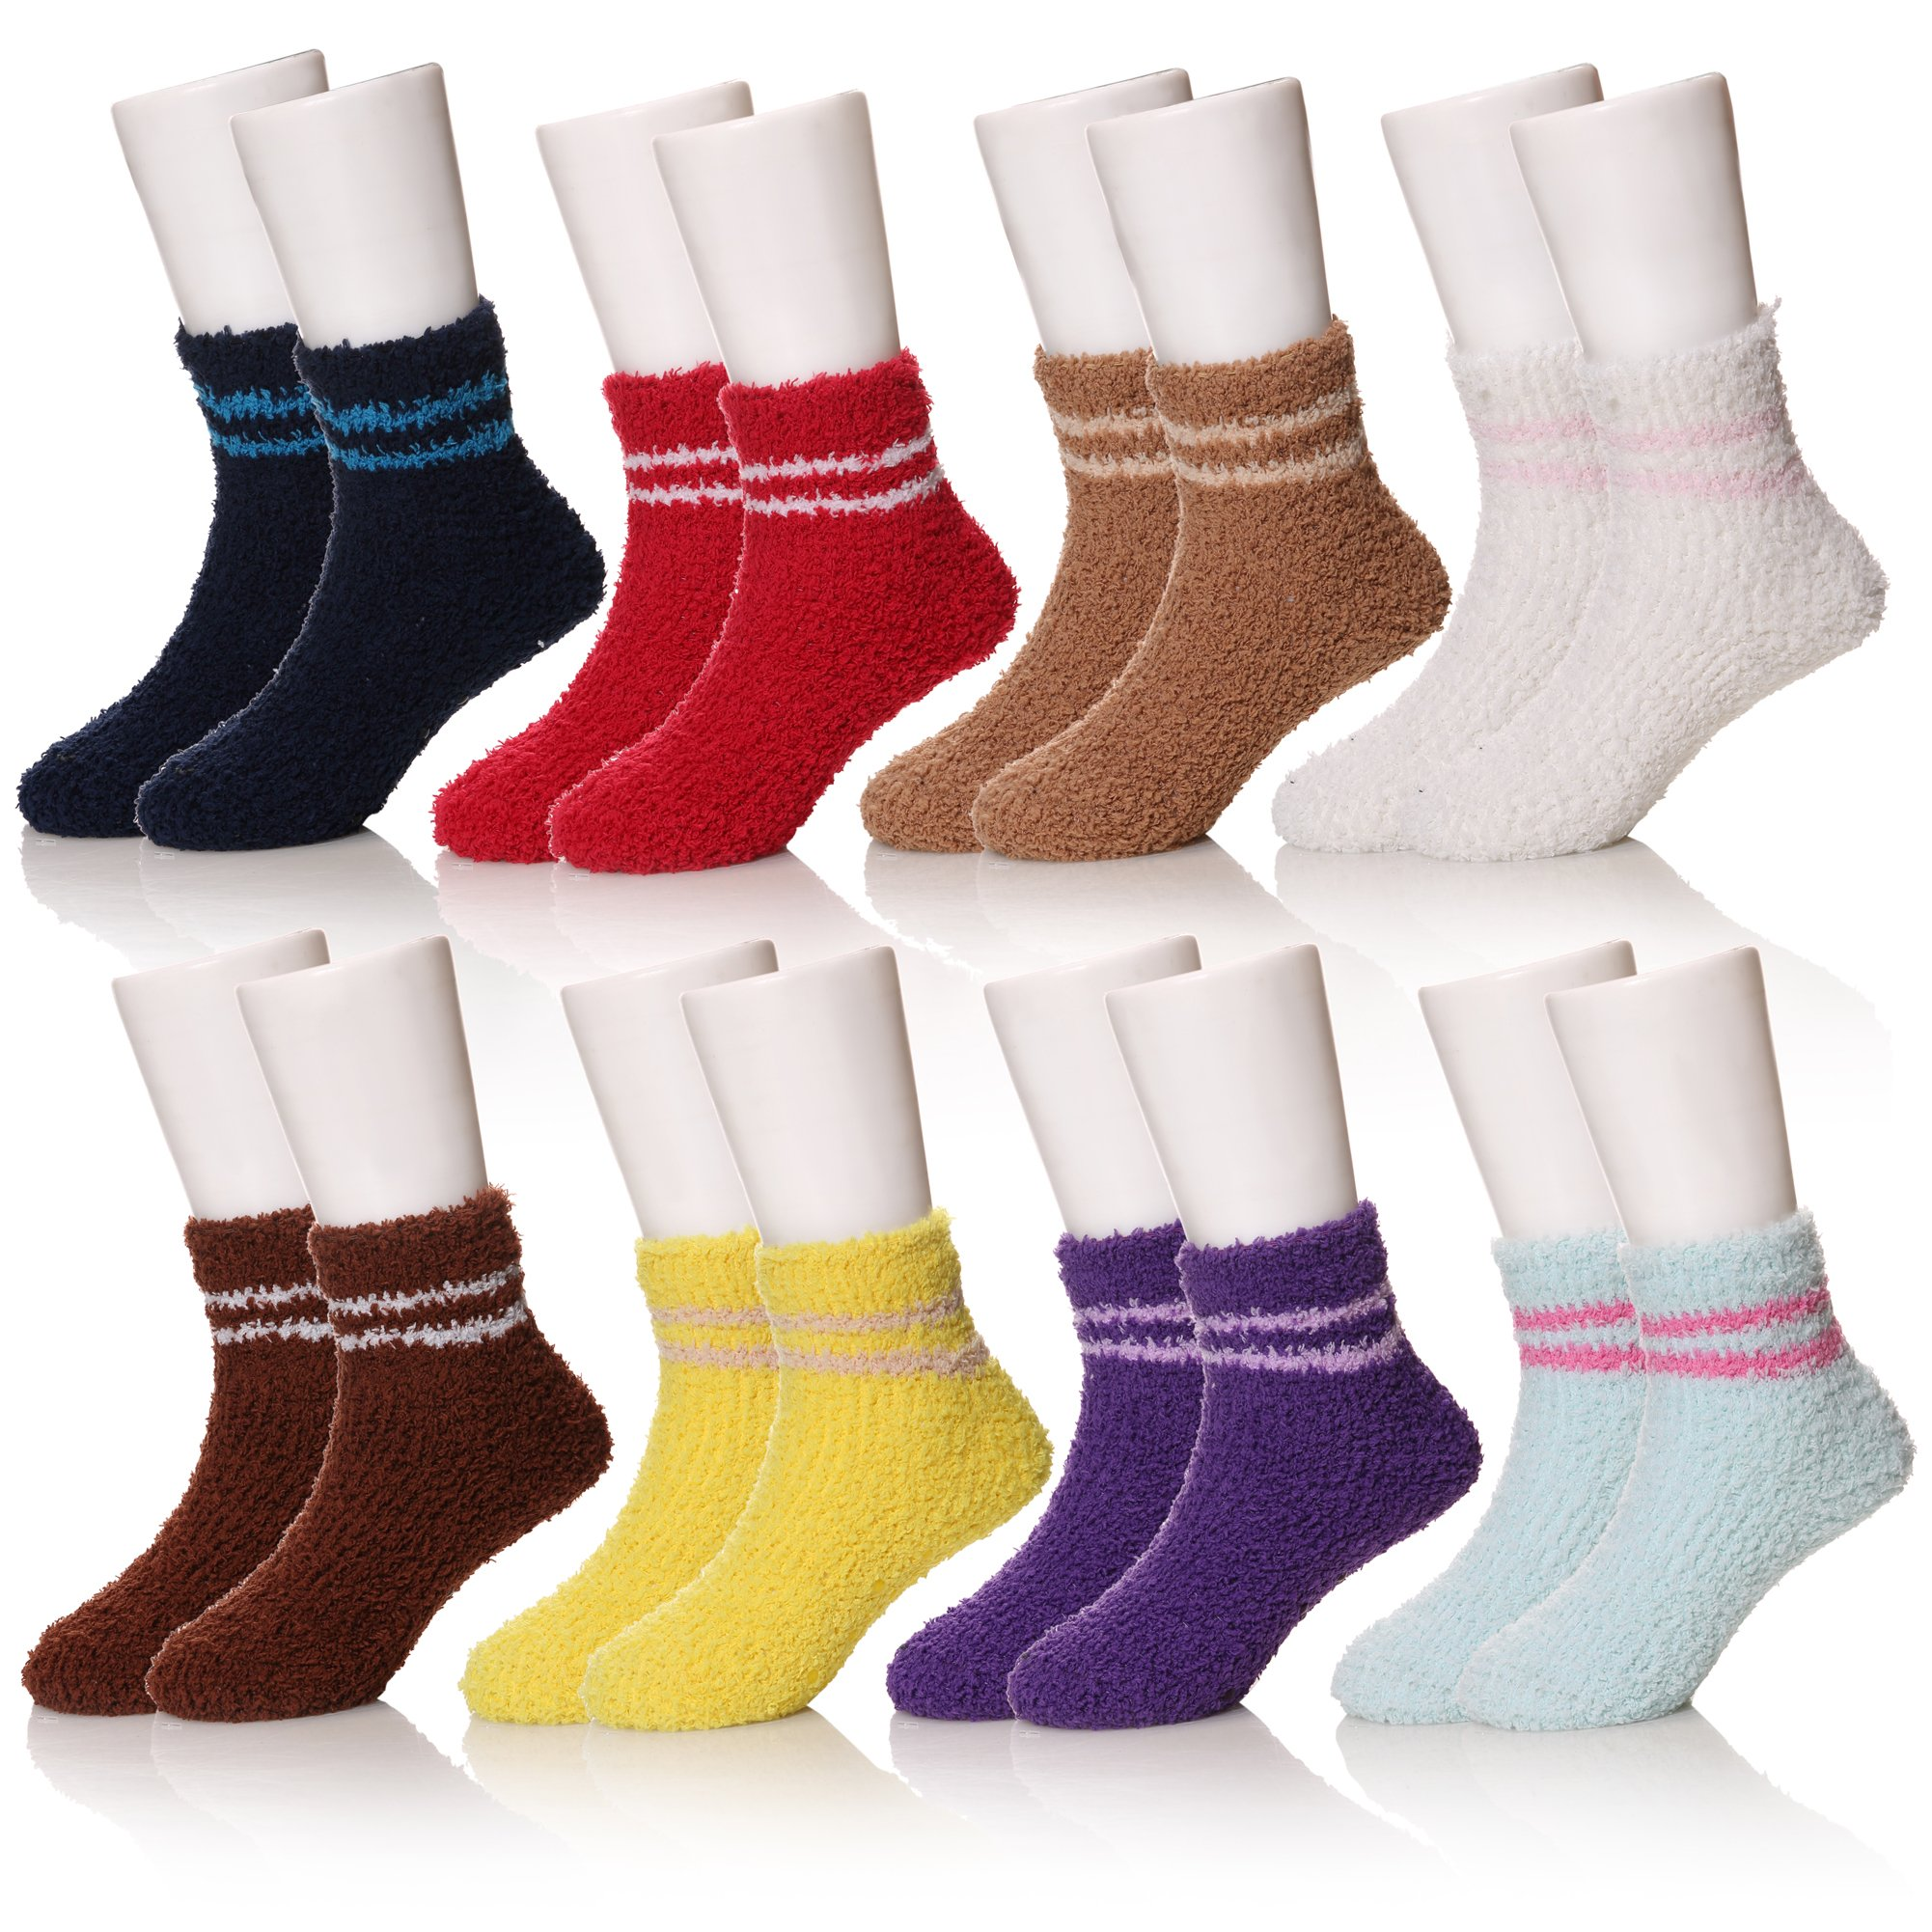 SEEYAN Kids Baby Childrens Boys Girls Anti Skid Toddlers Fuzzy Thick Soft Casual Warm Colorful Socks (Solid color, 1-3)